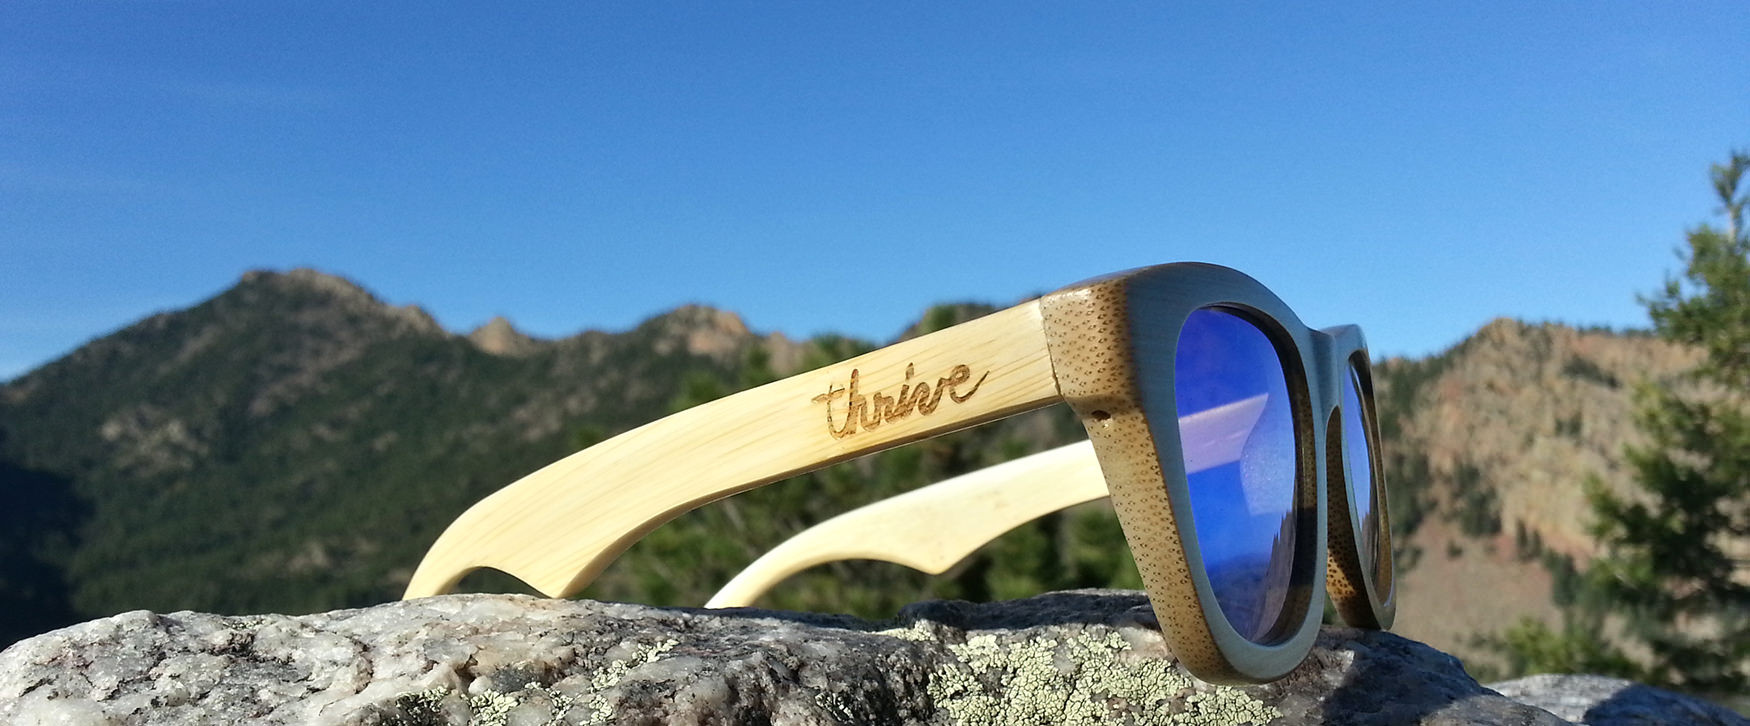 Thrive Shades